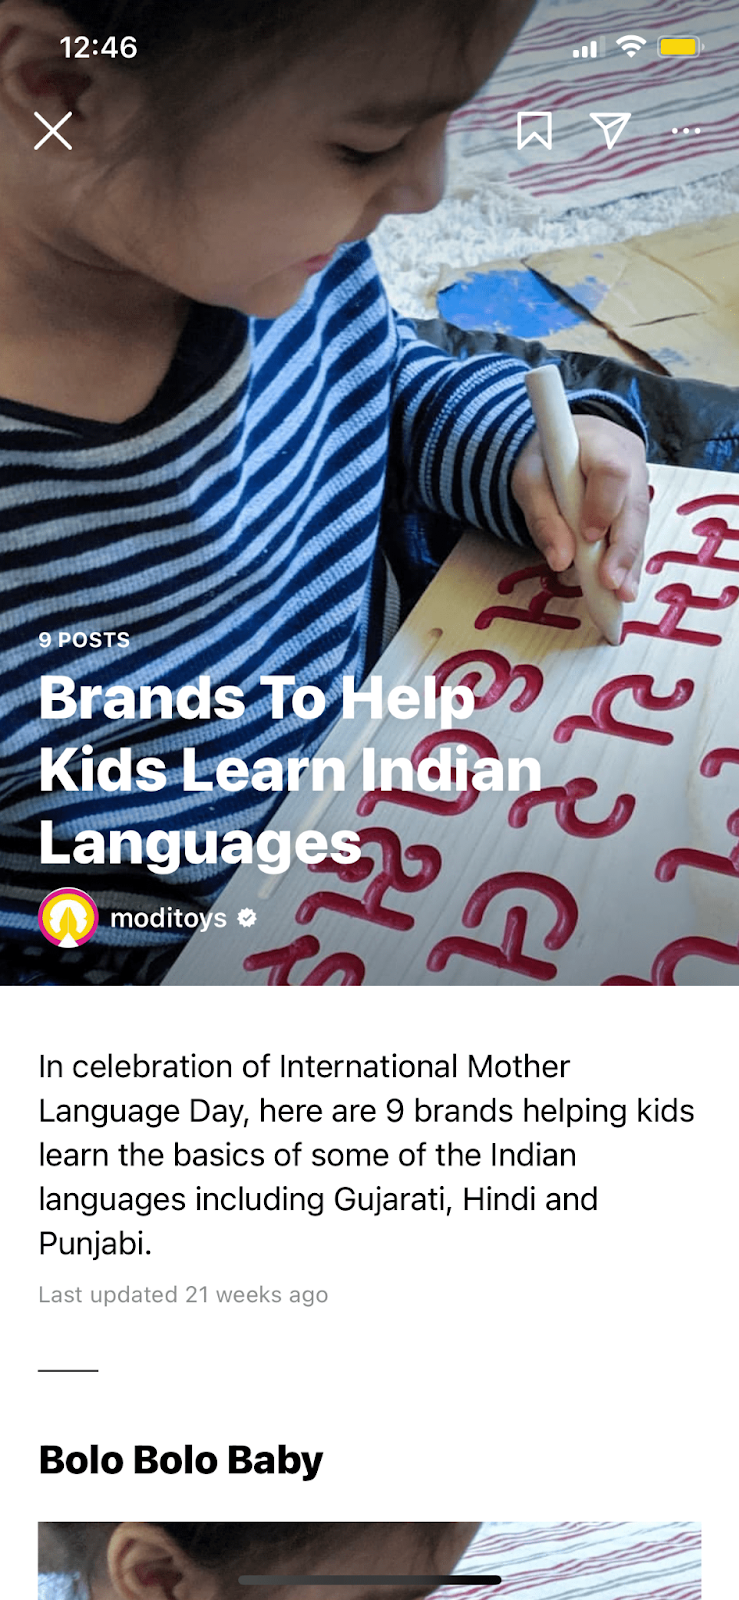 """image of a child touching a wooden board covered in an Indian language with the words """"Brands To Help Kids Learn Indian Languages"""" overlaid"""